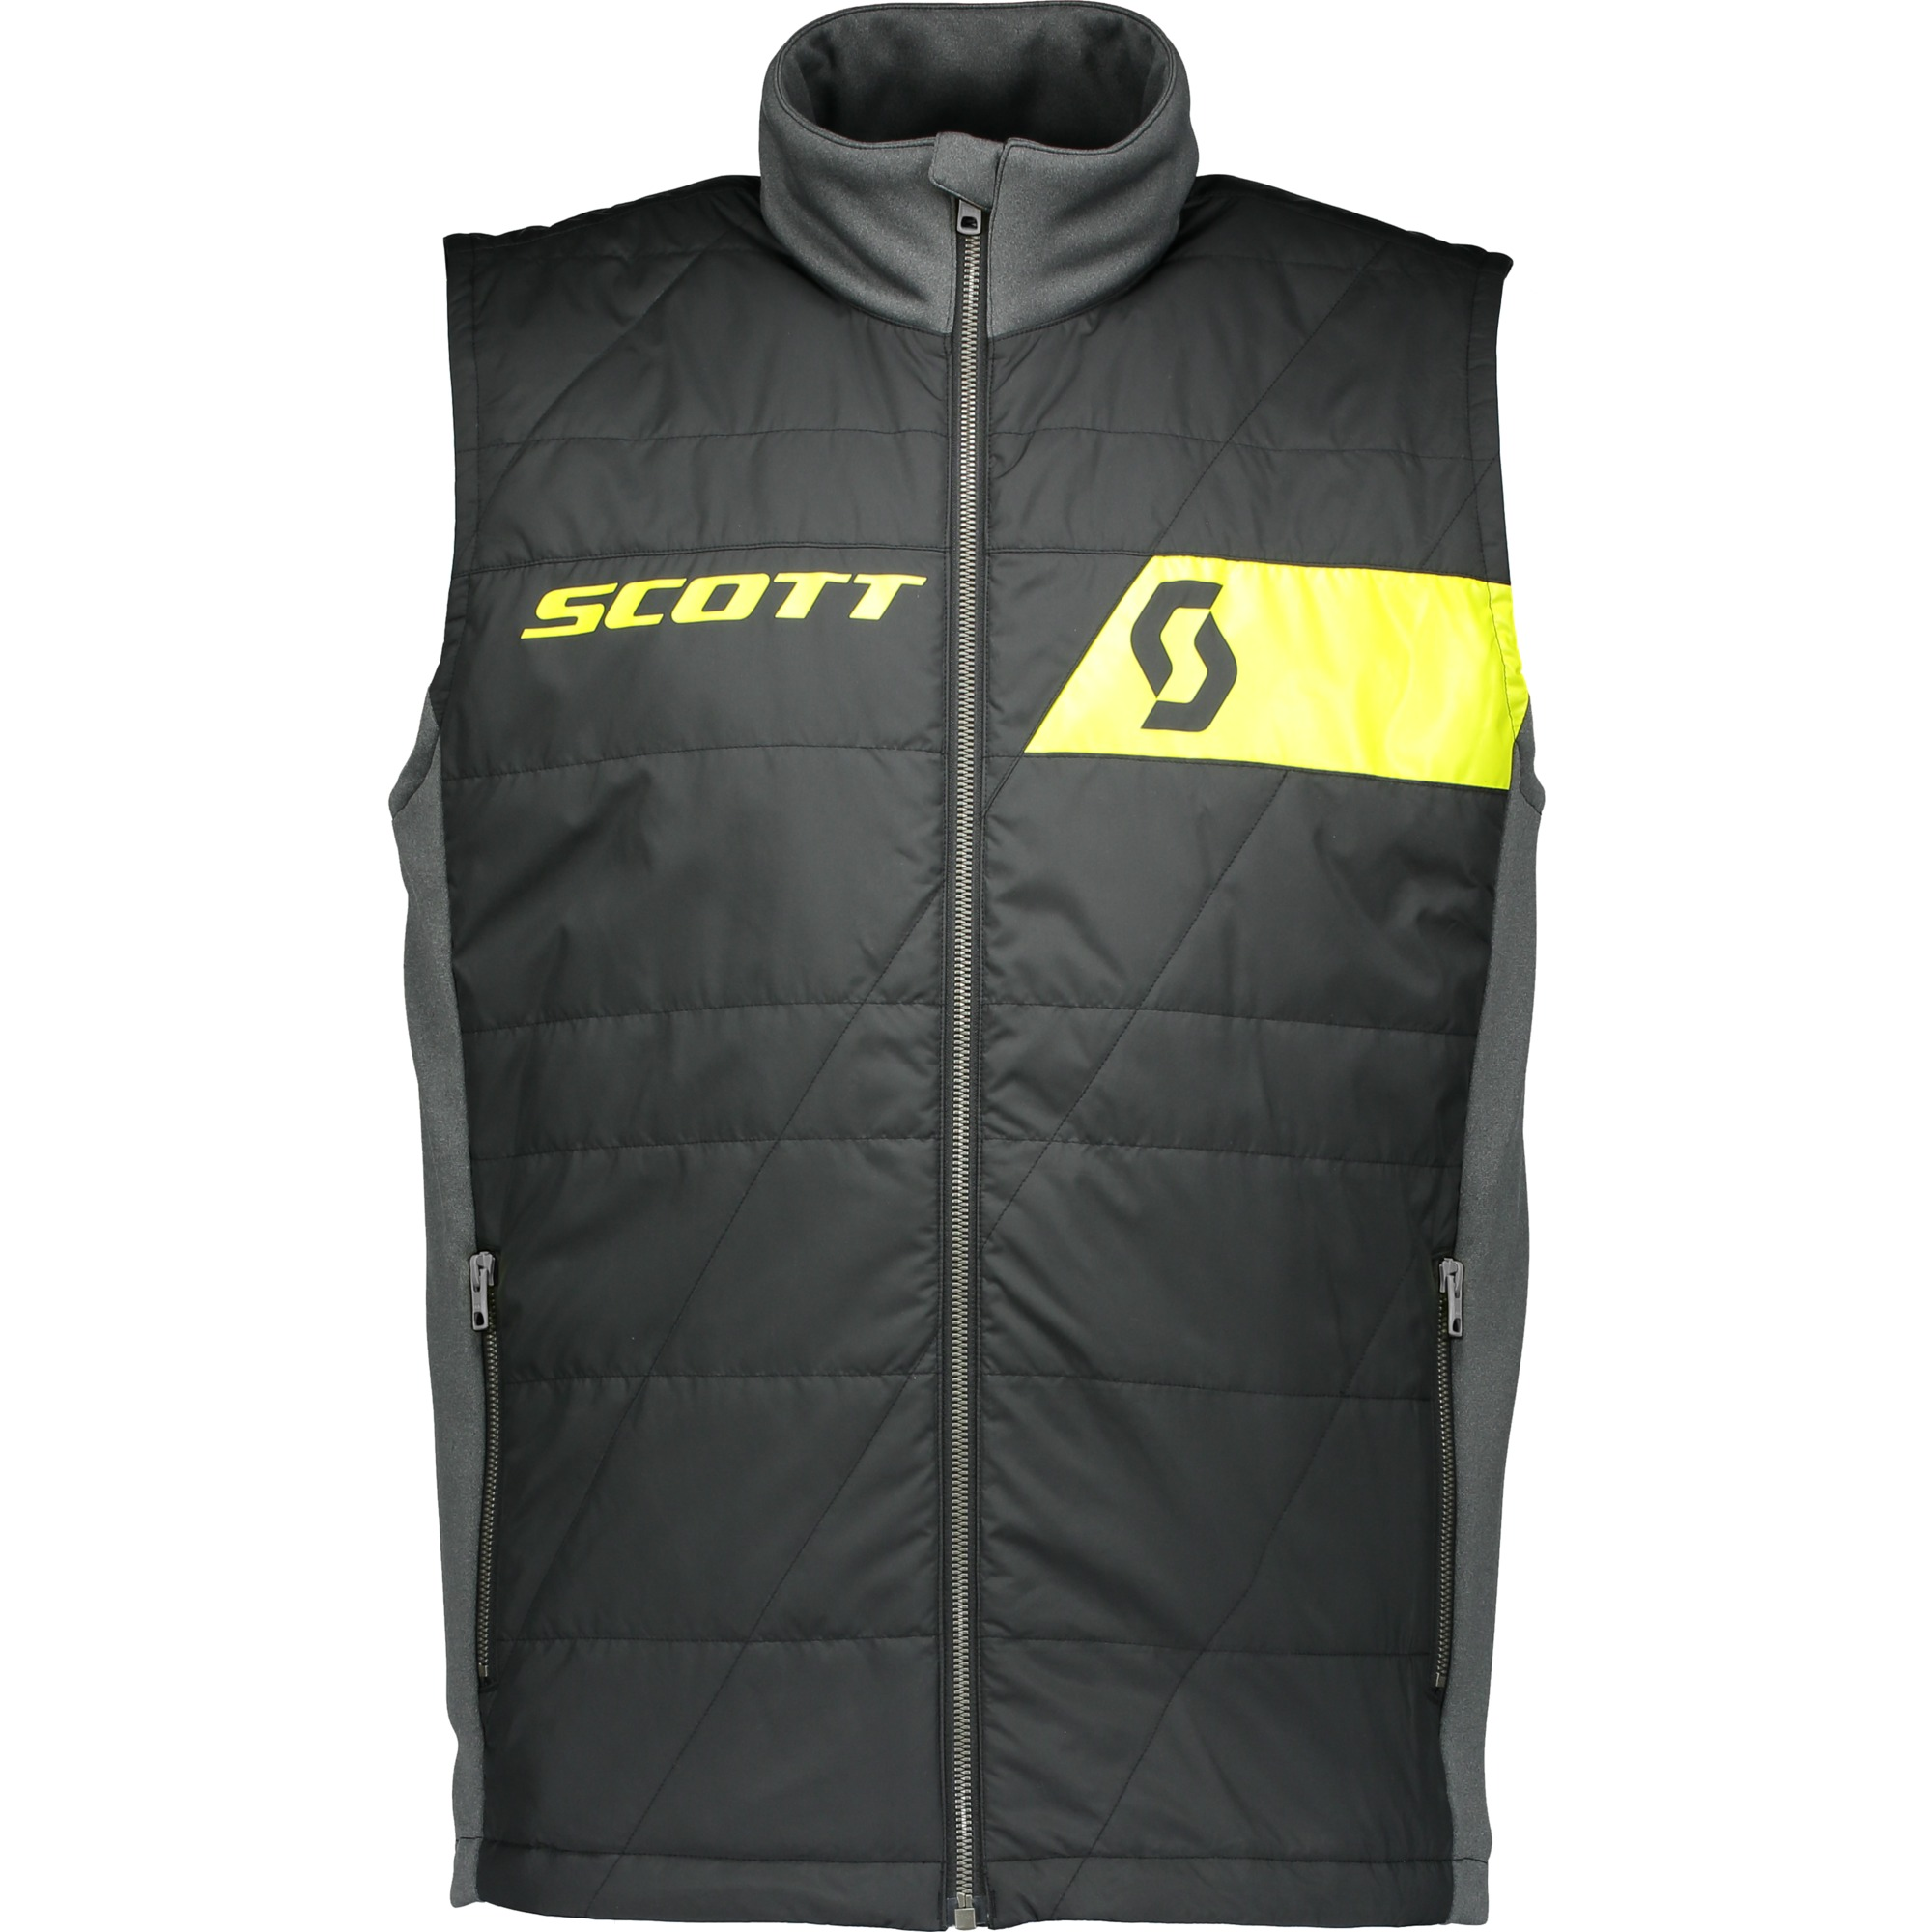 SCOTT Factory Team Insulation Vest